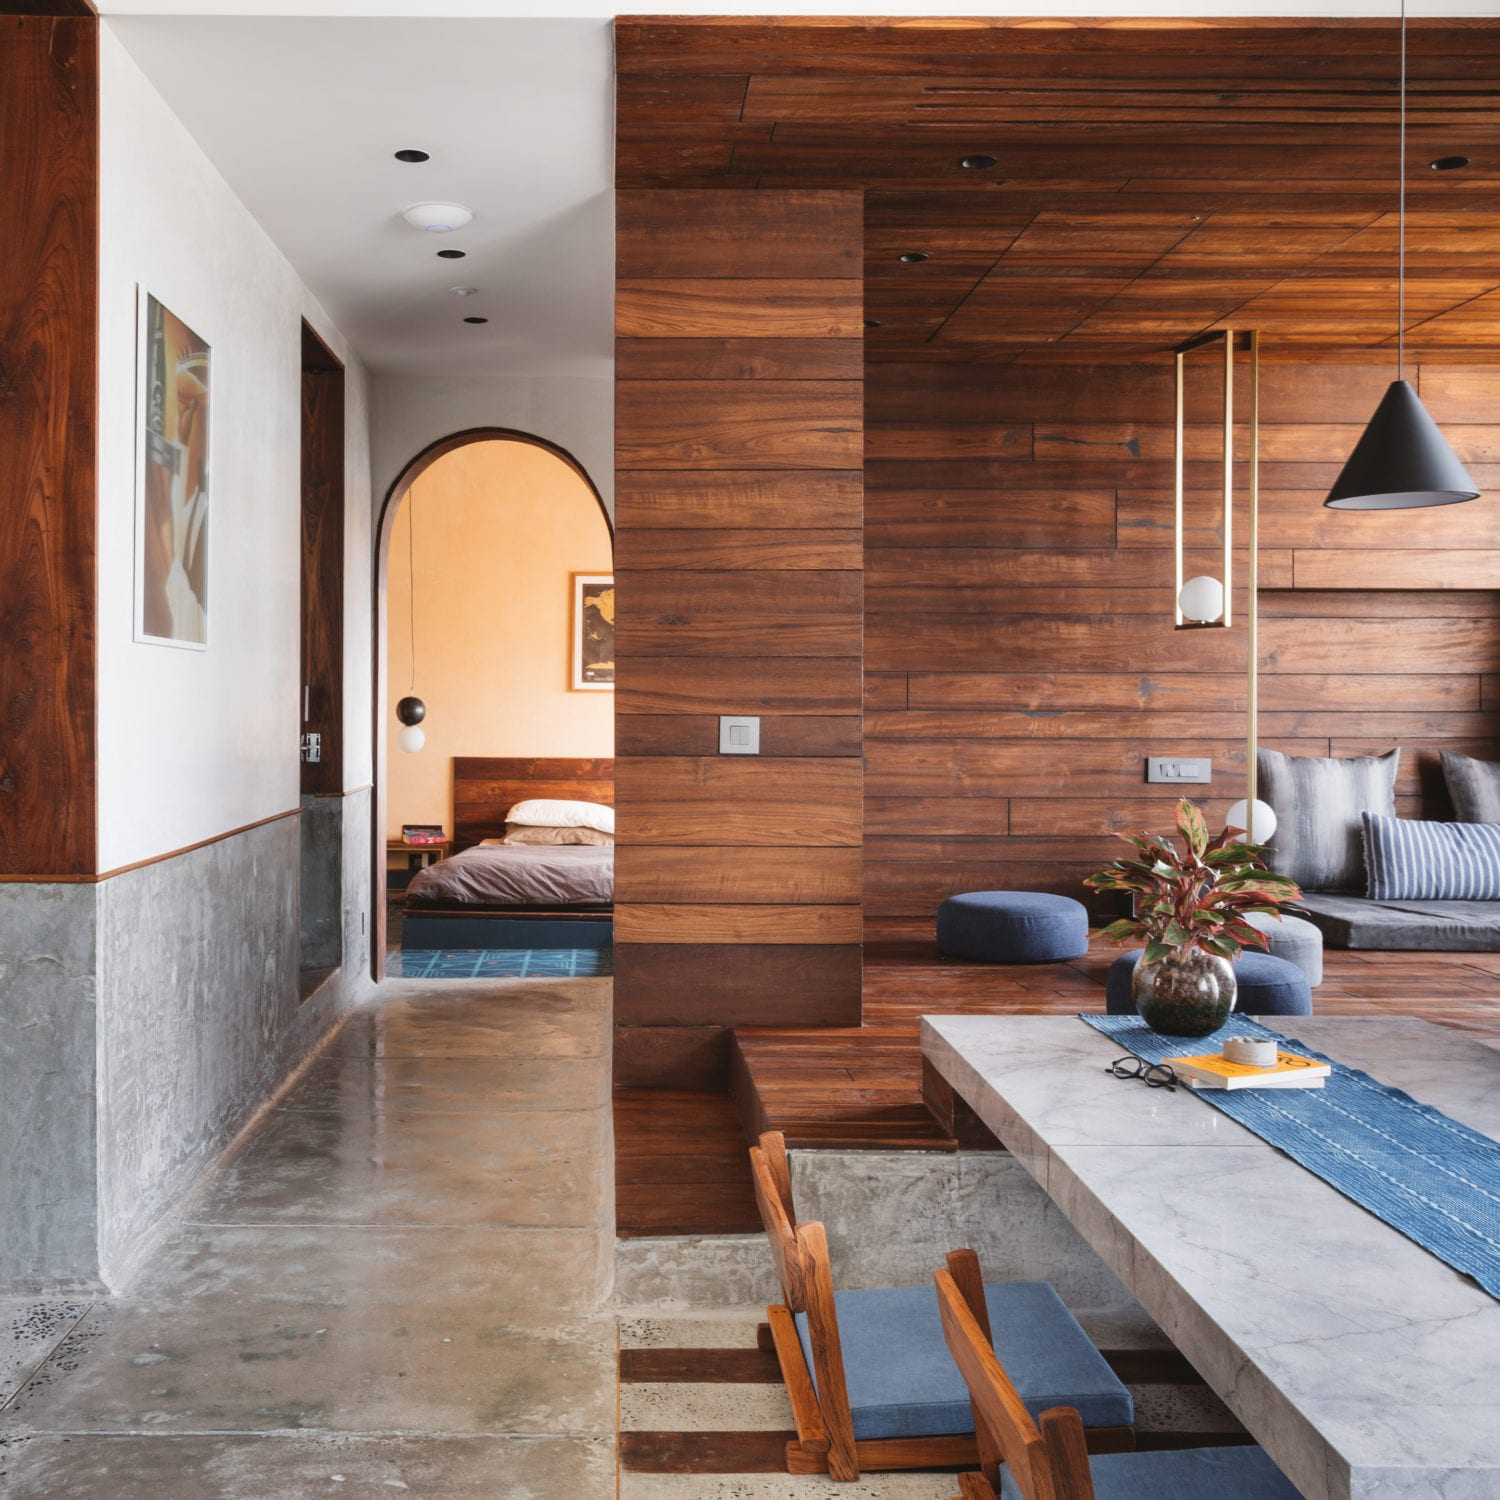 MD Apartment in Ahmedabad, India by Saransh  Yellowtrace